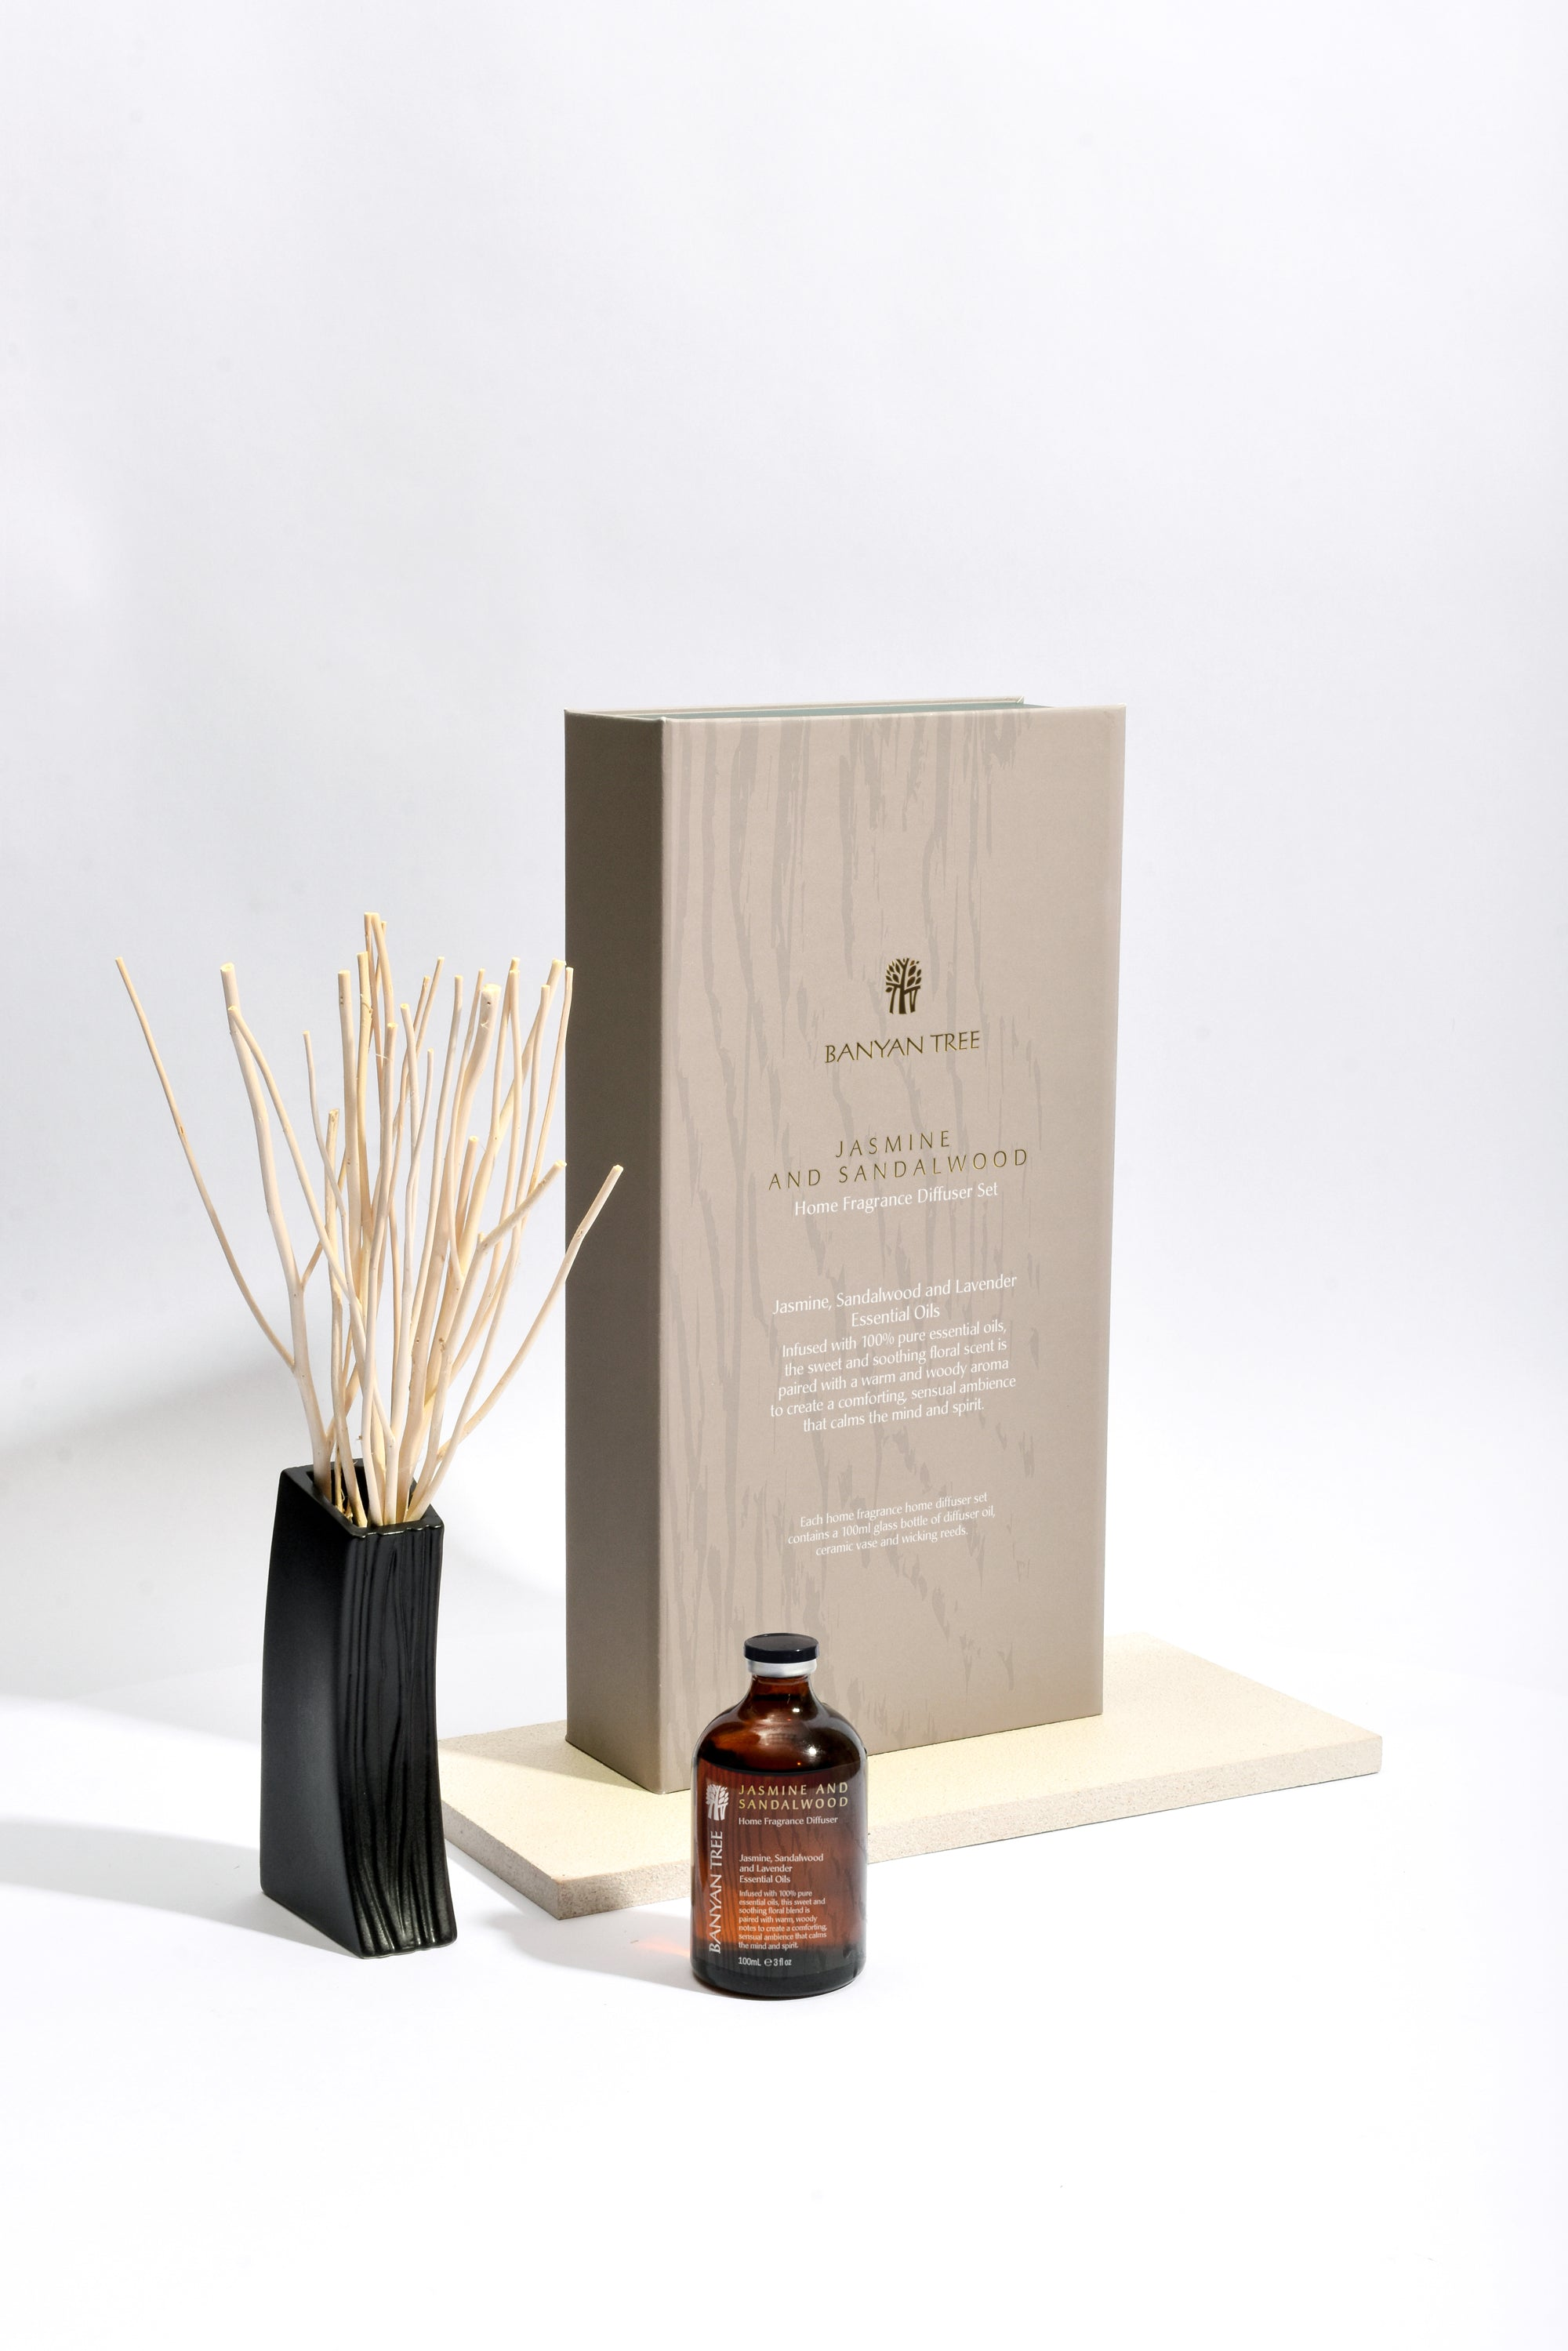 Jasmine and Sandalwood Home Fragrance Diffuser Set - Banyan Tree Gallery